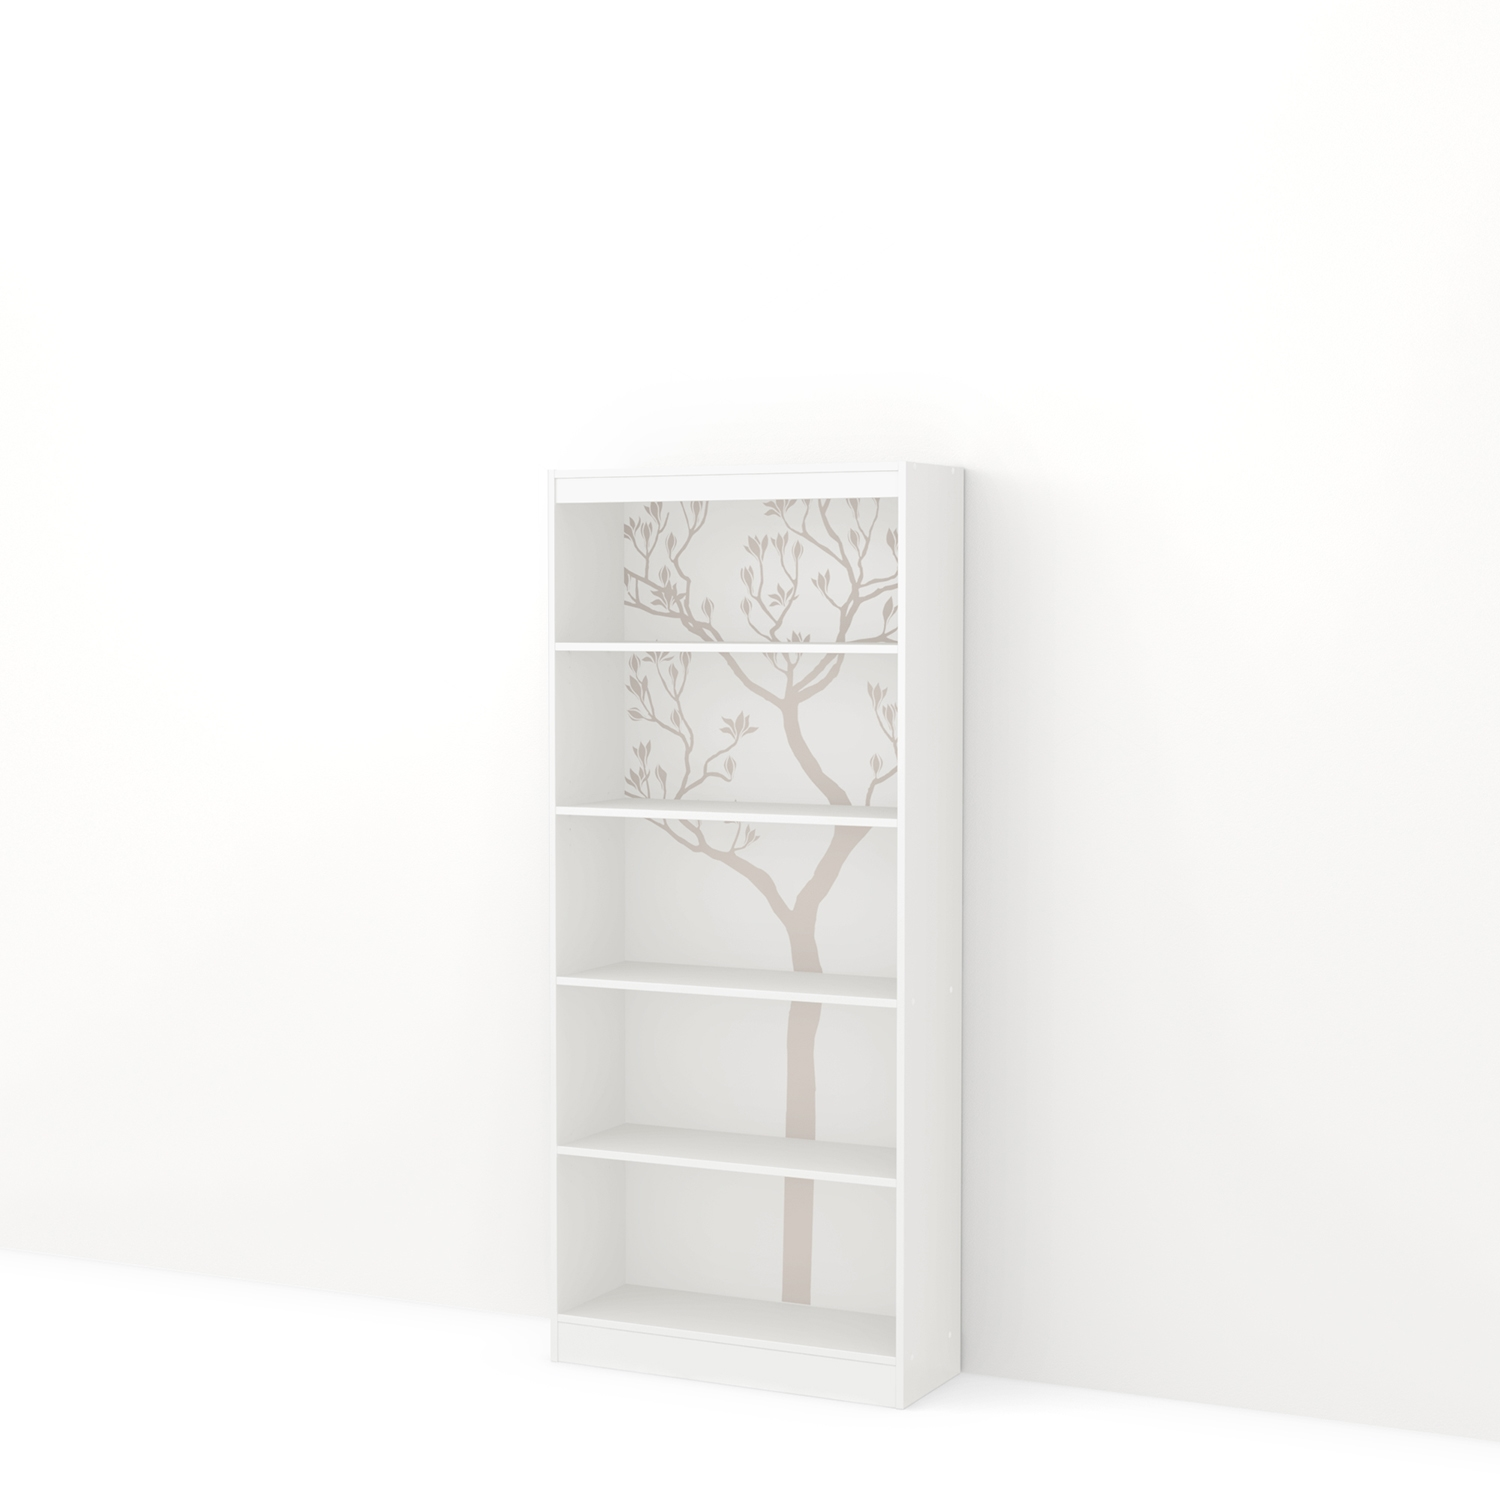 Axess Bookcase - 5 Shelves, Romantic Tree Decals, Pure White - SS-8050131K